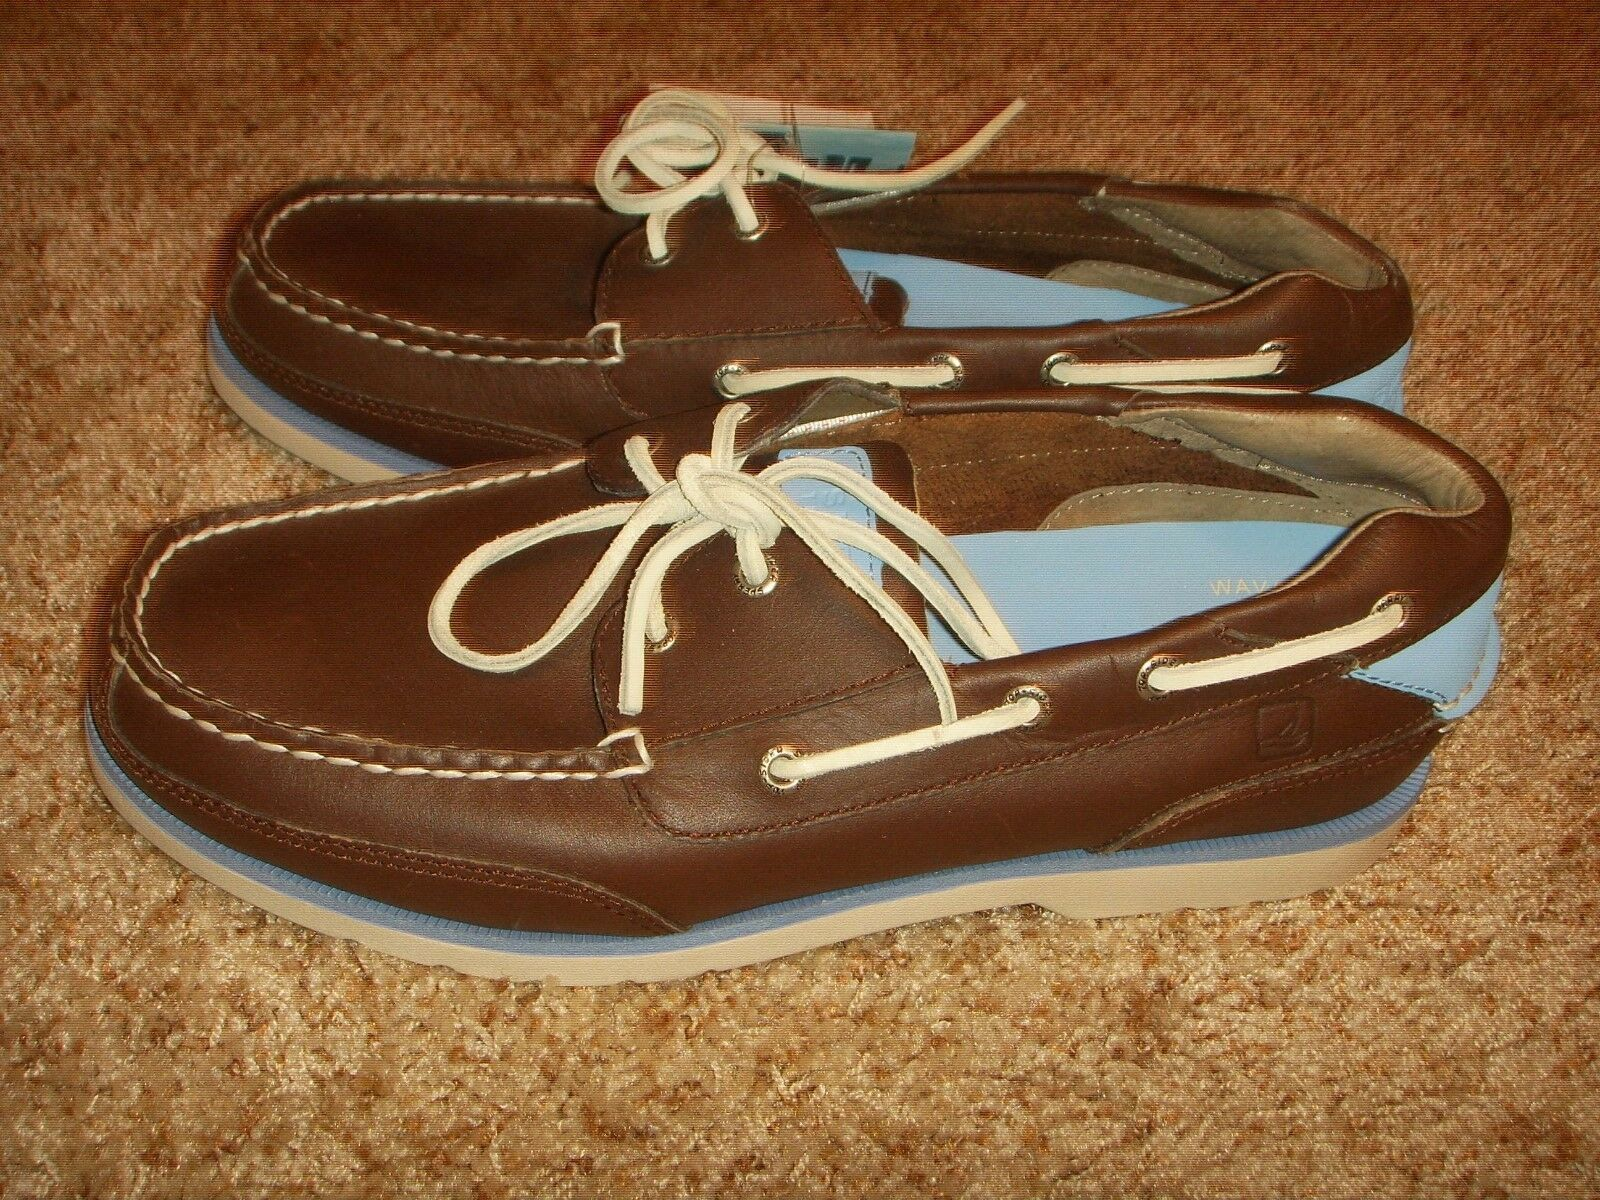 SPERRY TOP SIDER STINGRAY 2 EYE MENS BROWN BLUE BOAT SHOES MENS EYE SIZE 10M bfc19c